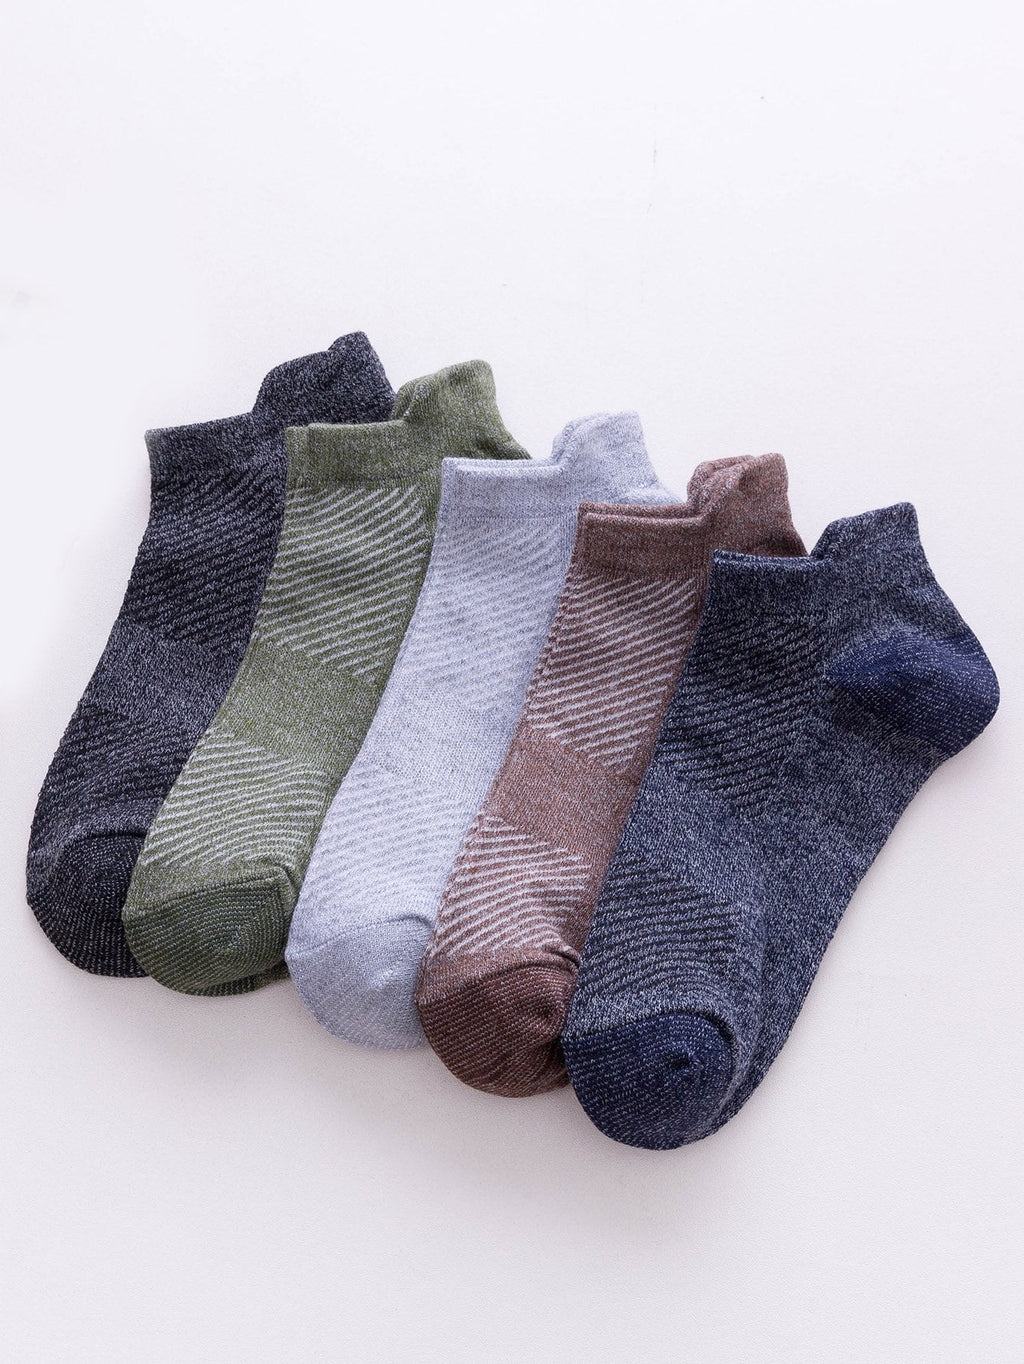 Men's Socks - Striped Ankle Socks 5pairs